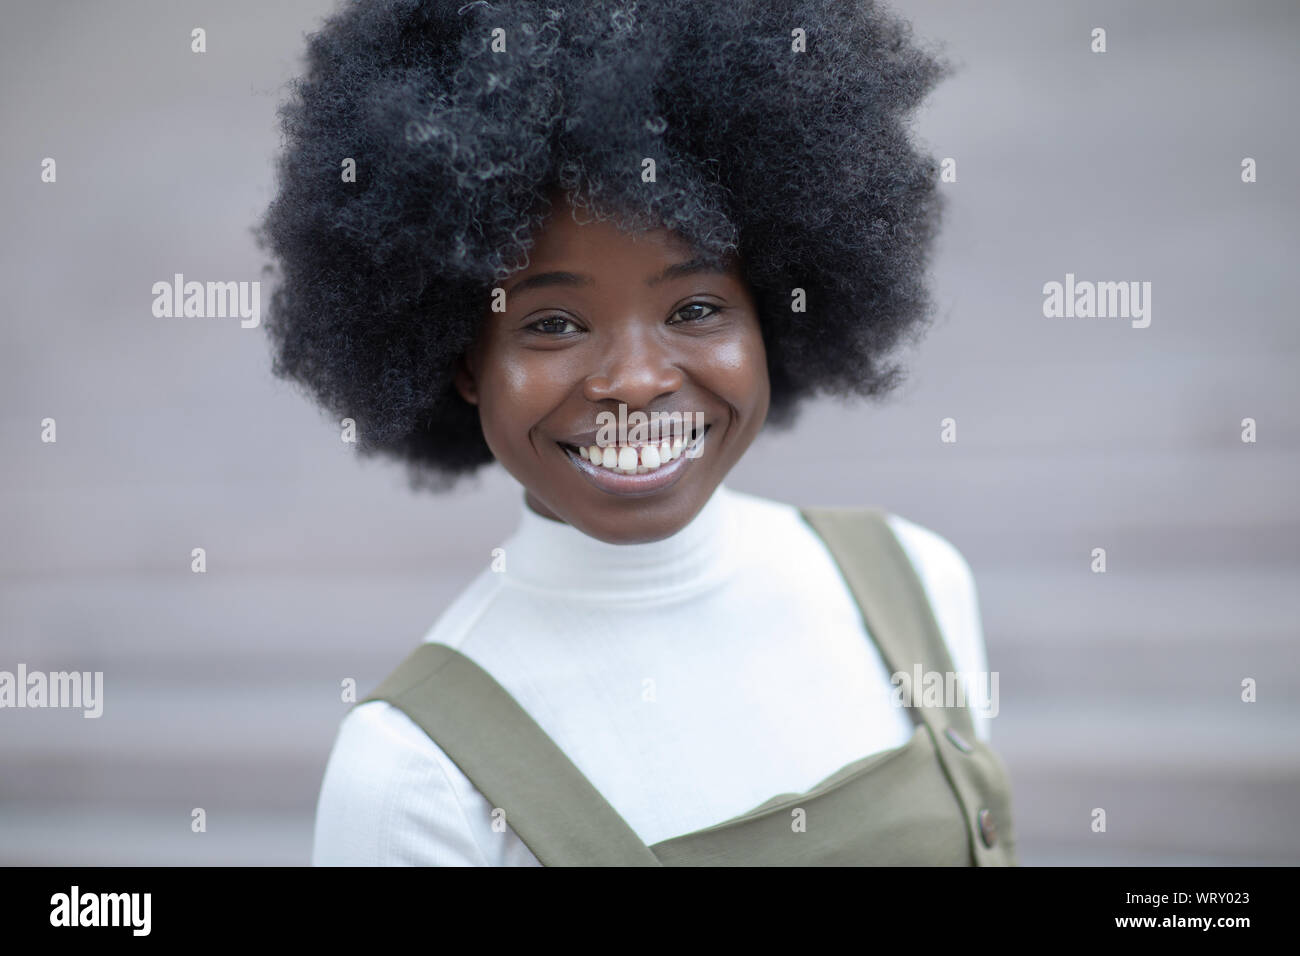 Gorgeous looking young black girl smiling broadly looking at the camera, artistick urban background, perfect for dentist company. Stock Photo